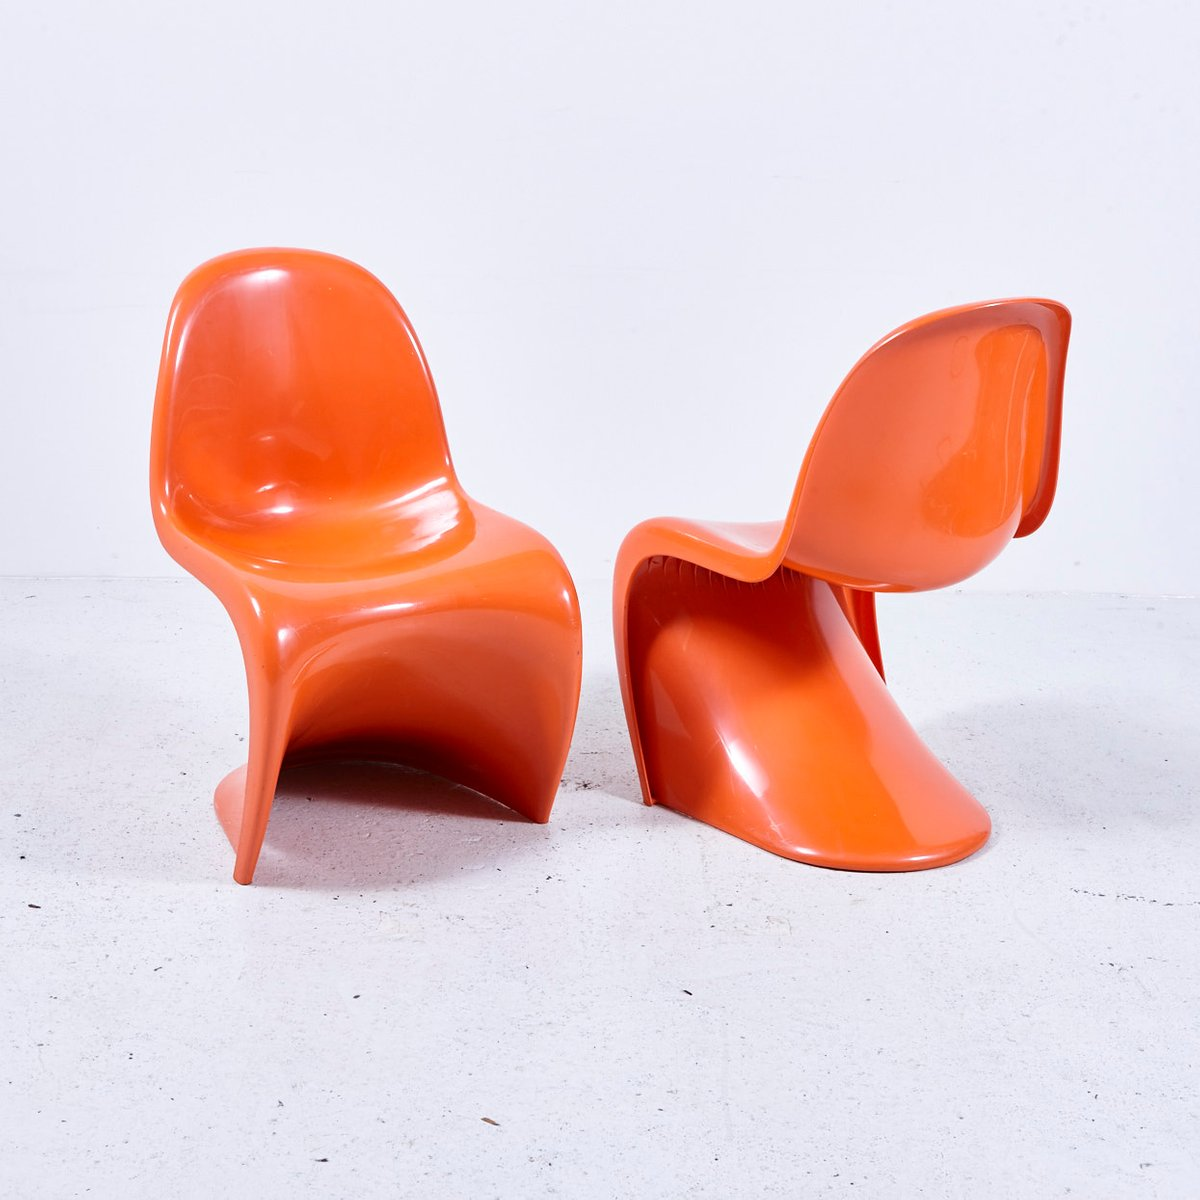 Orange Panton Chair By Verner Panton For Hermann Miller, 1970s